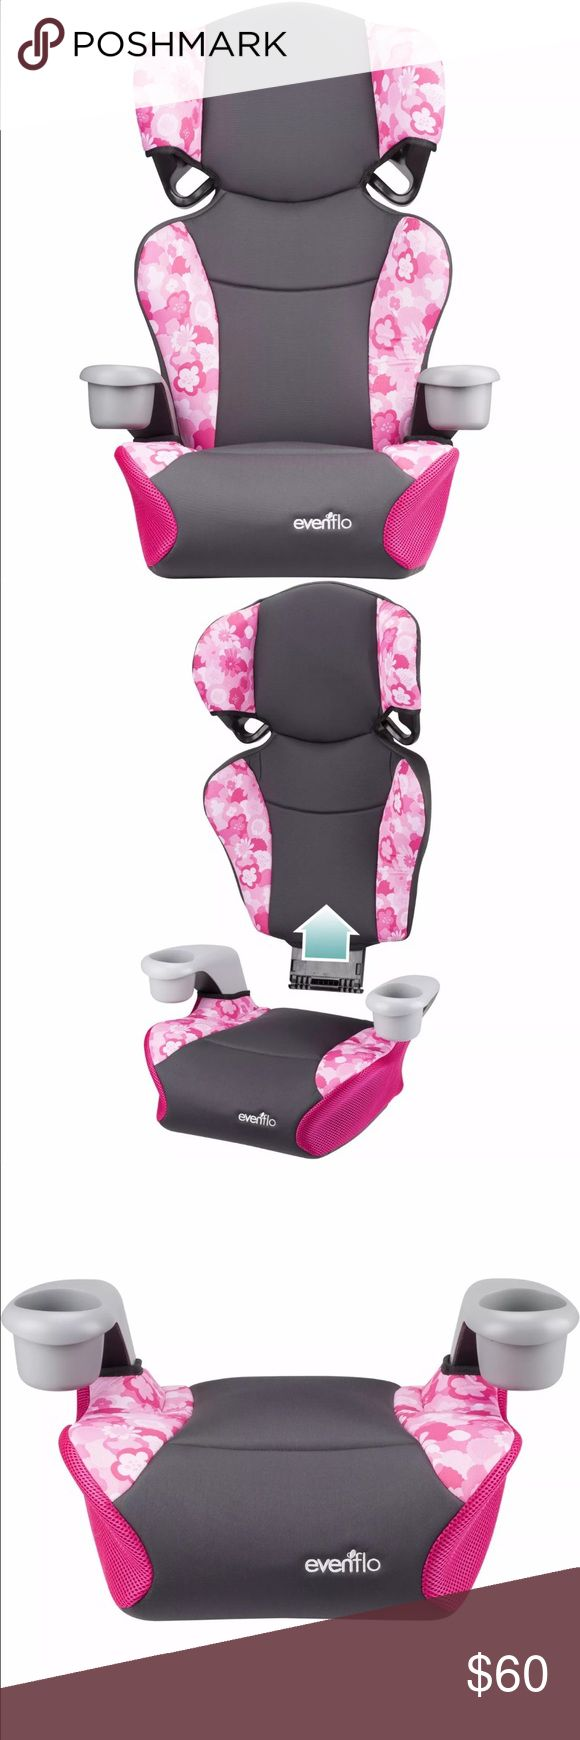 """Evenflo Big Kid Sport high Back Booster Seat Peony U.S. weight:40 - 110 lbs (13.6 - 49.8 kg) U.S. Height: 38 - 57"""" (97 - 145cm) Canadian Weight: 40 - 110 lbs (18 - 49.8 kg) Canadian Height: 40 - 57"""" (102 - 145cm) Age: child is at least 4 years old or older Child's ears are below top of child restraint headrest For Use as No Back Booster (without backrest) Weight: 40 - 110 lbs (18 - 49.8 kg) Height: 40 - 57"""" (102 - 145cm) tall Age: child is at least 4 years old    Maximum Weight 110 lbs…"""